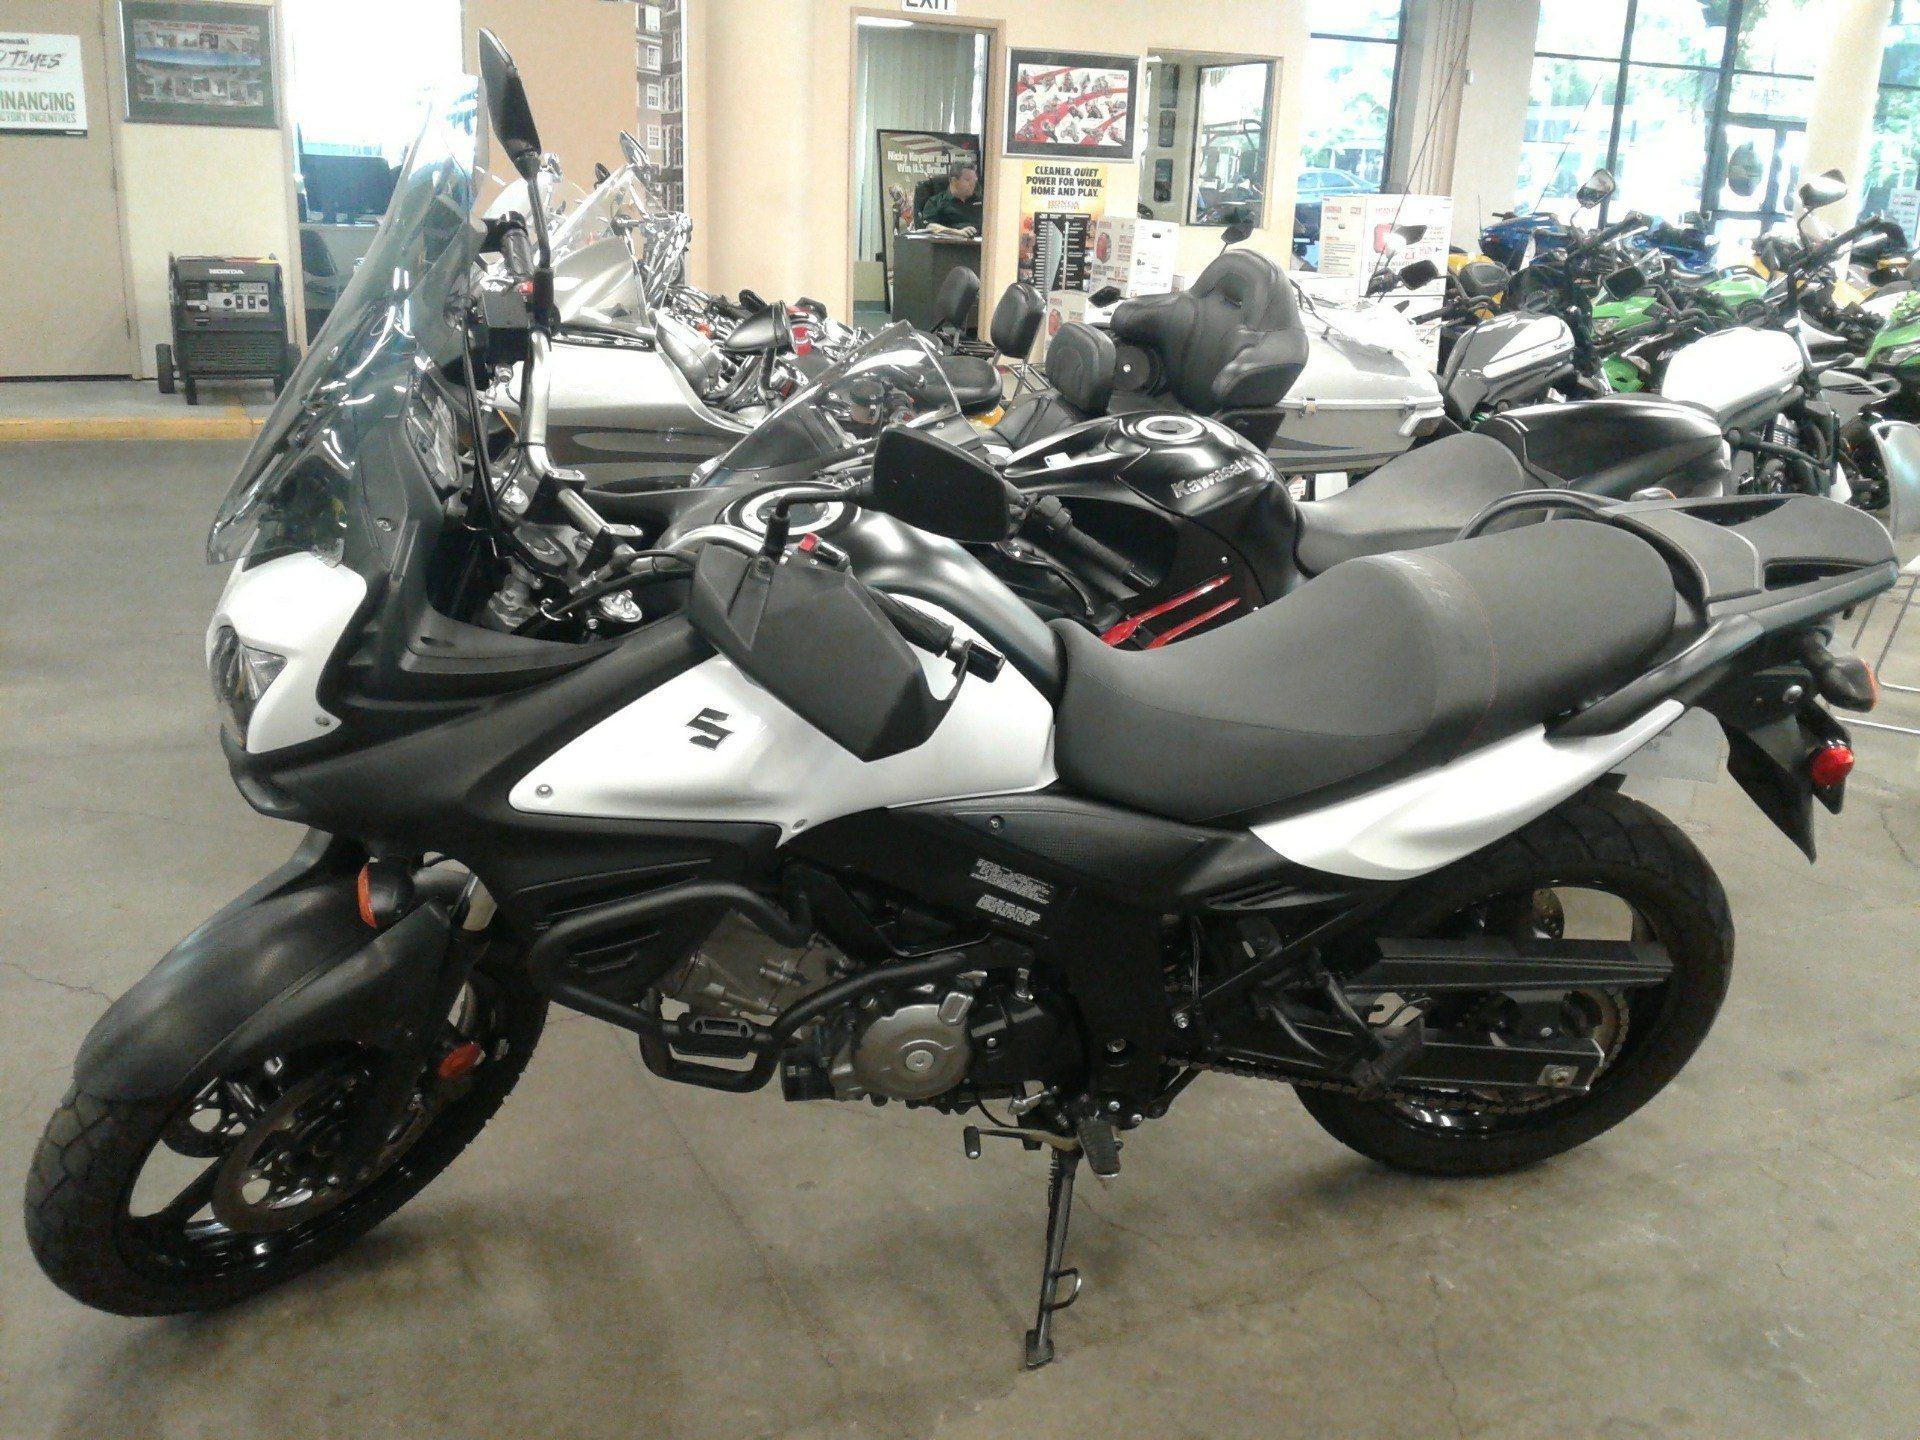 2013 Suzuki V-Strom 650 ABS in Bakersfield, California